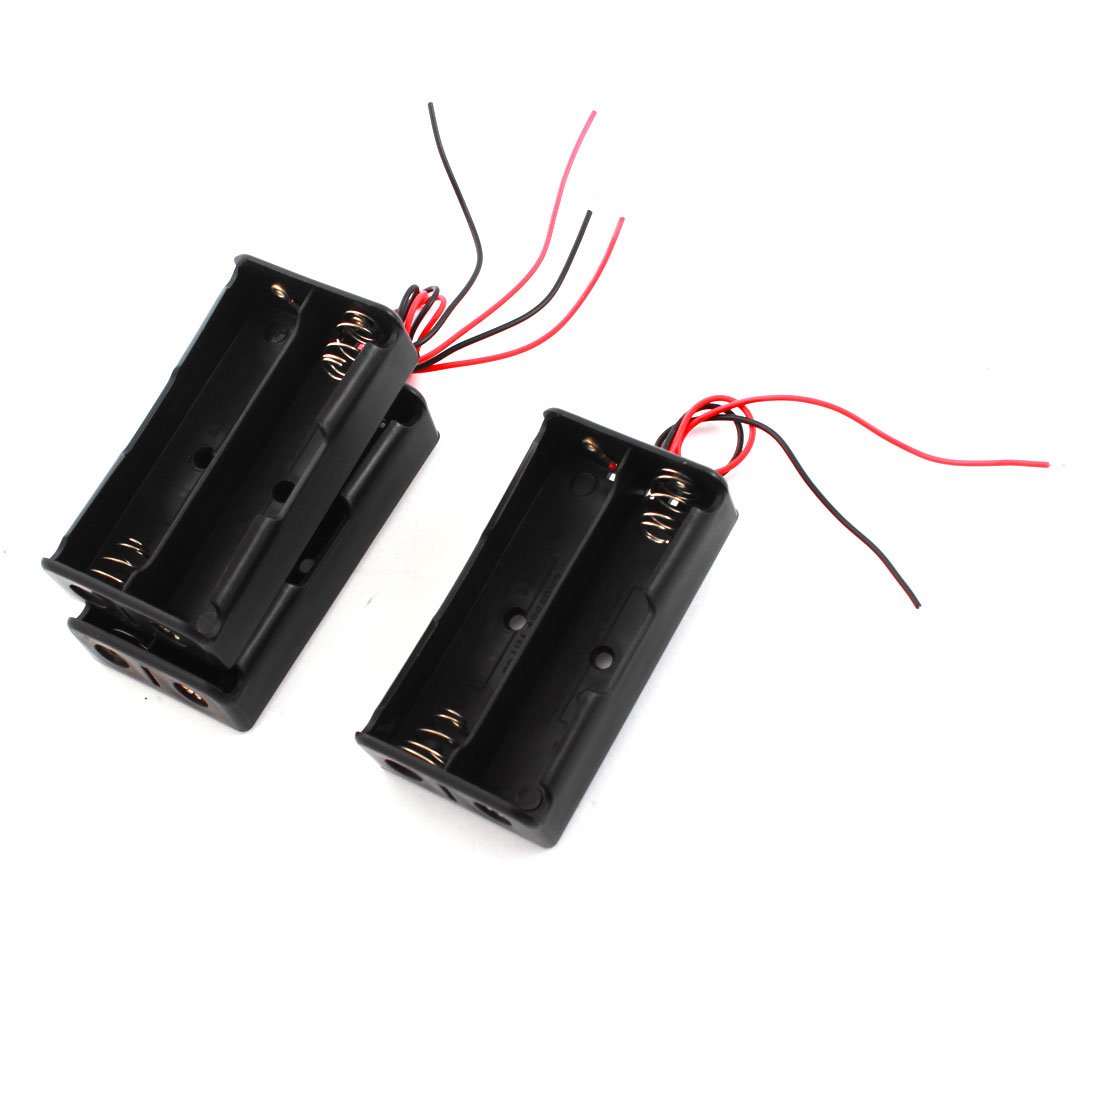 3Pcs 2 x 3.7V 18650 Battery Wire Leads Cover Sealed Switch Black Plastic Spring Clip Battery Holder